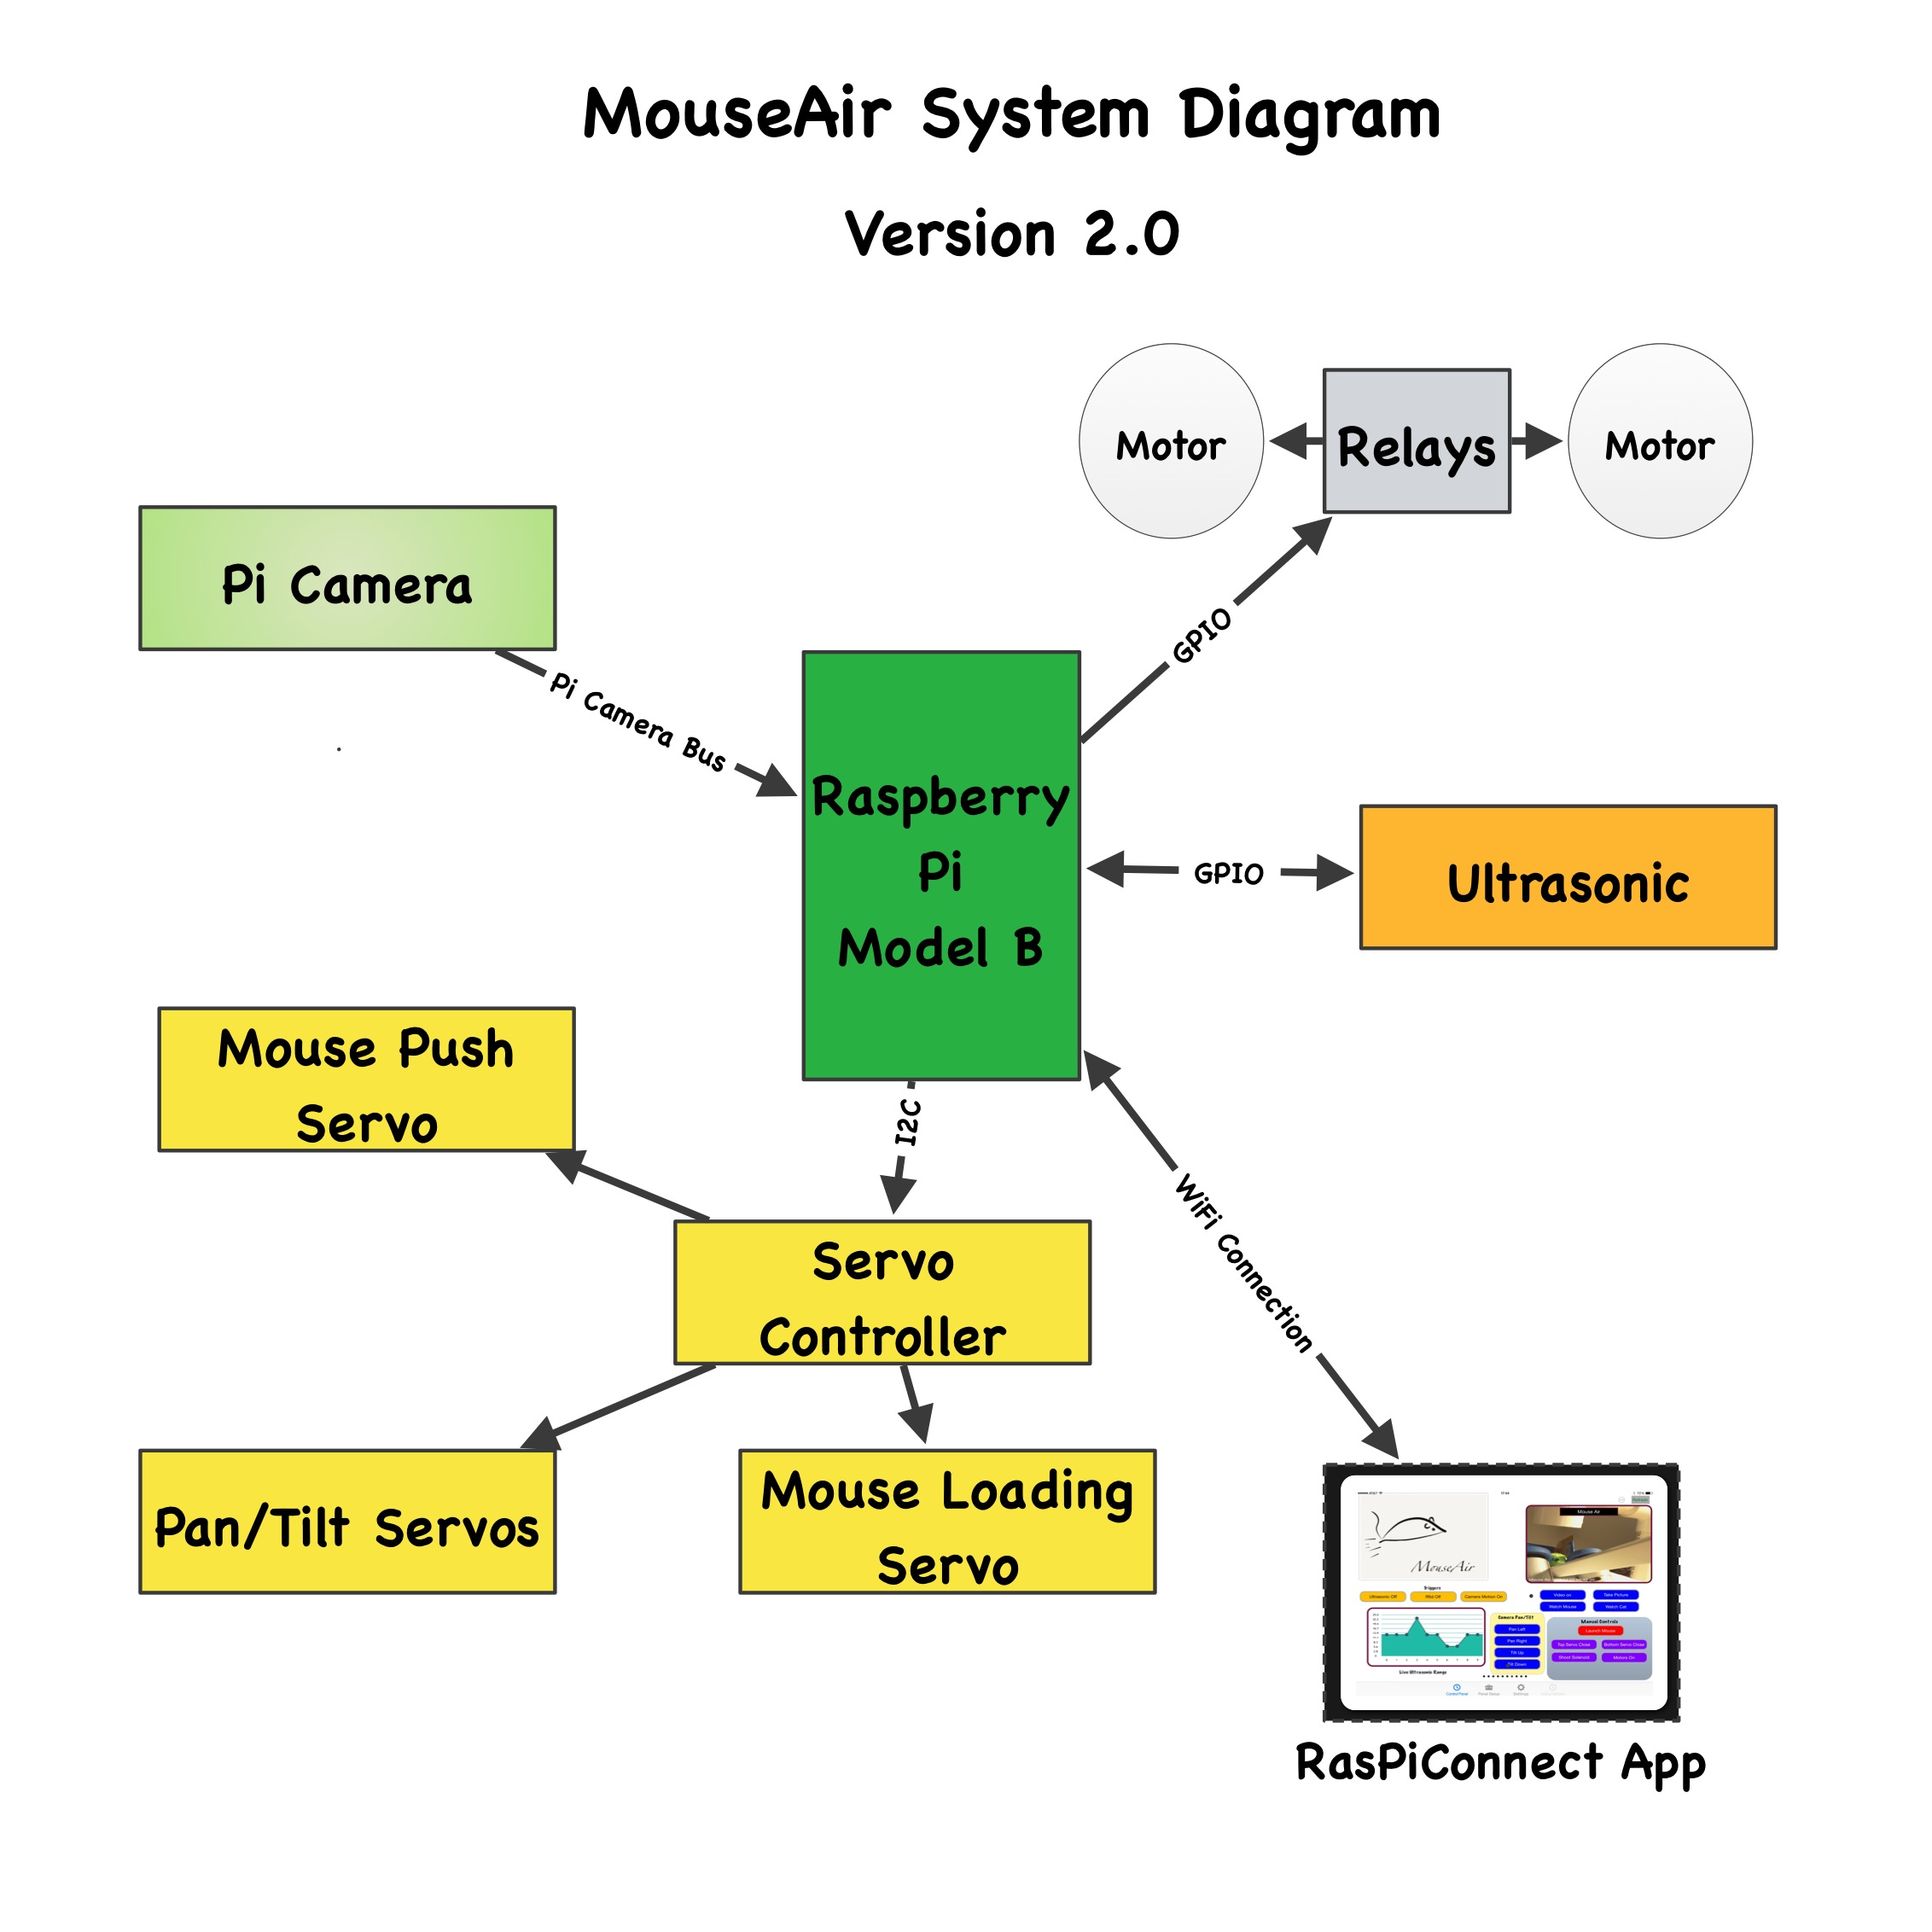 Here Is The Hardware Block Diagram For Mouseair Mouseair Is - Wiring Hardware Block Diagram on hardware flow chart, building a line diagram, hardware block procedure, hardware organizational chart, hardware installation, cnx diagram, thermostat diagram, software versioning diagram, notebook battery diagram, hardware manual, access control system diagram, computer diagram,